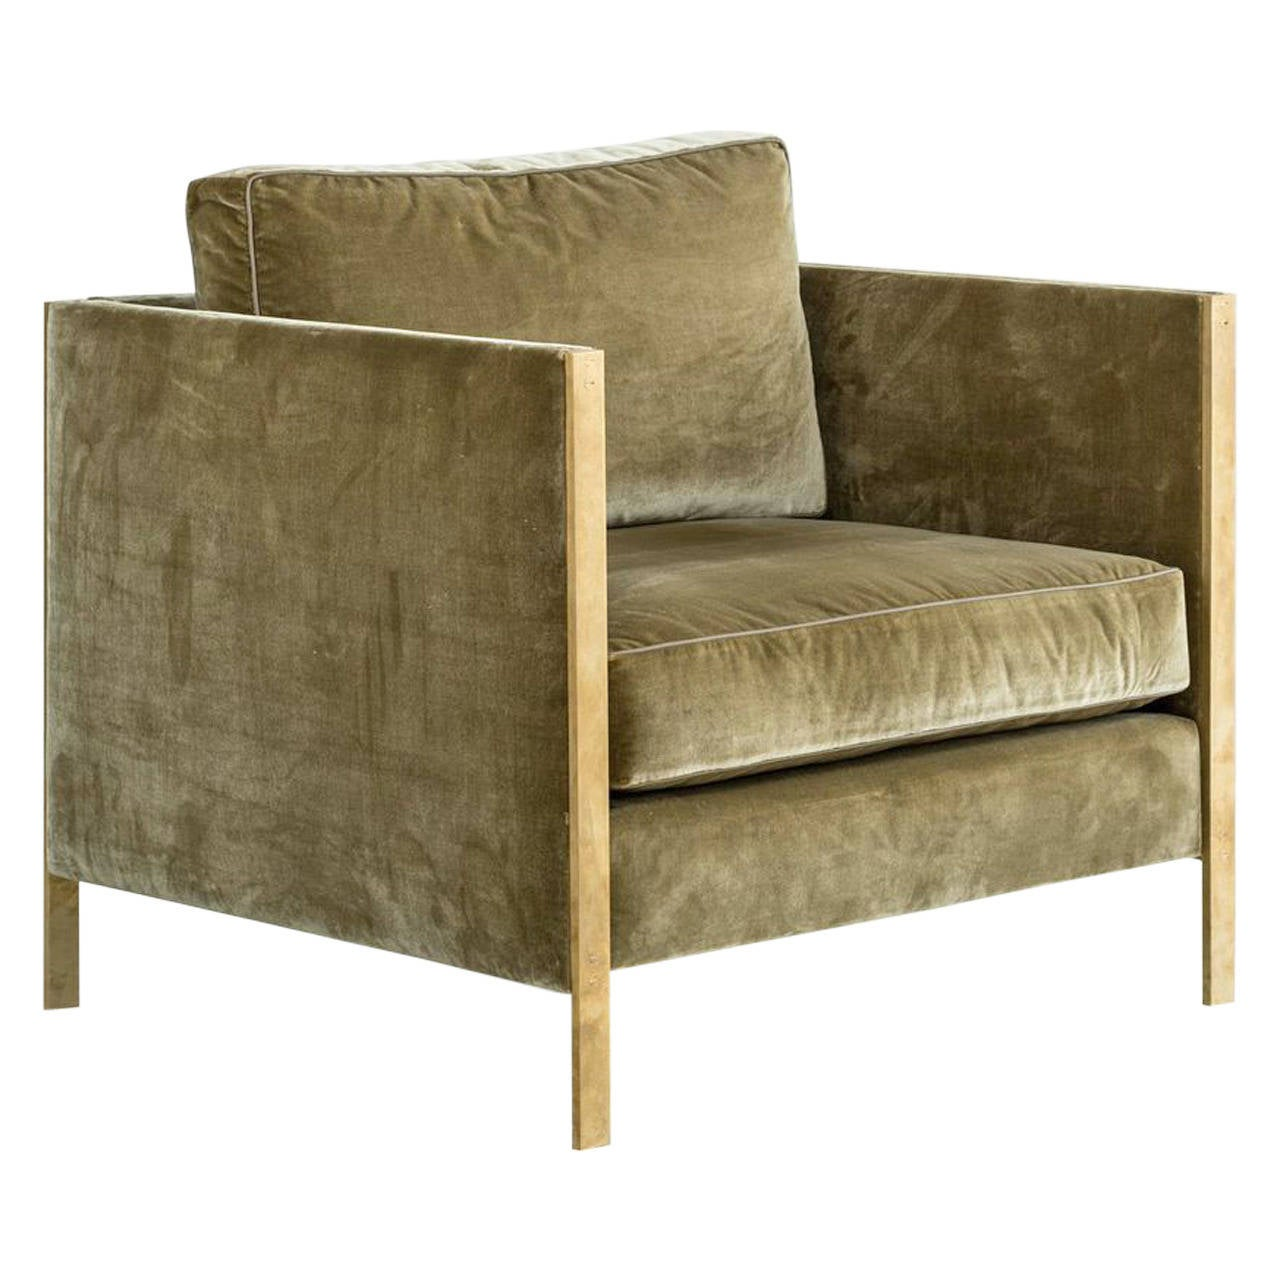 KGBL Armstrong Armchair, Custom Order, COM/COL For Sale